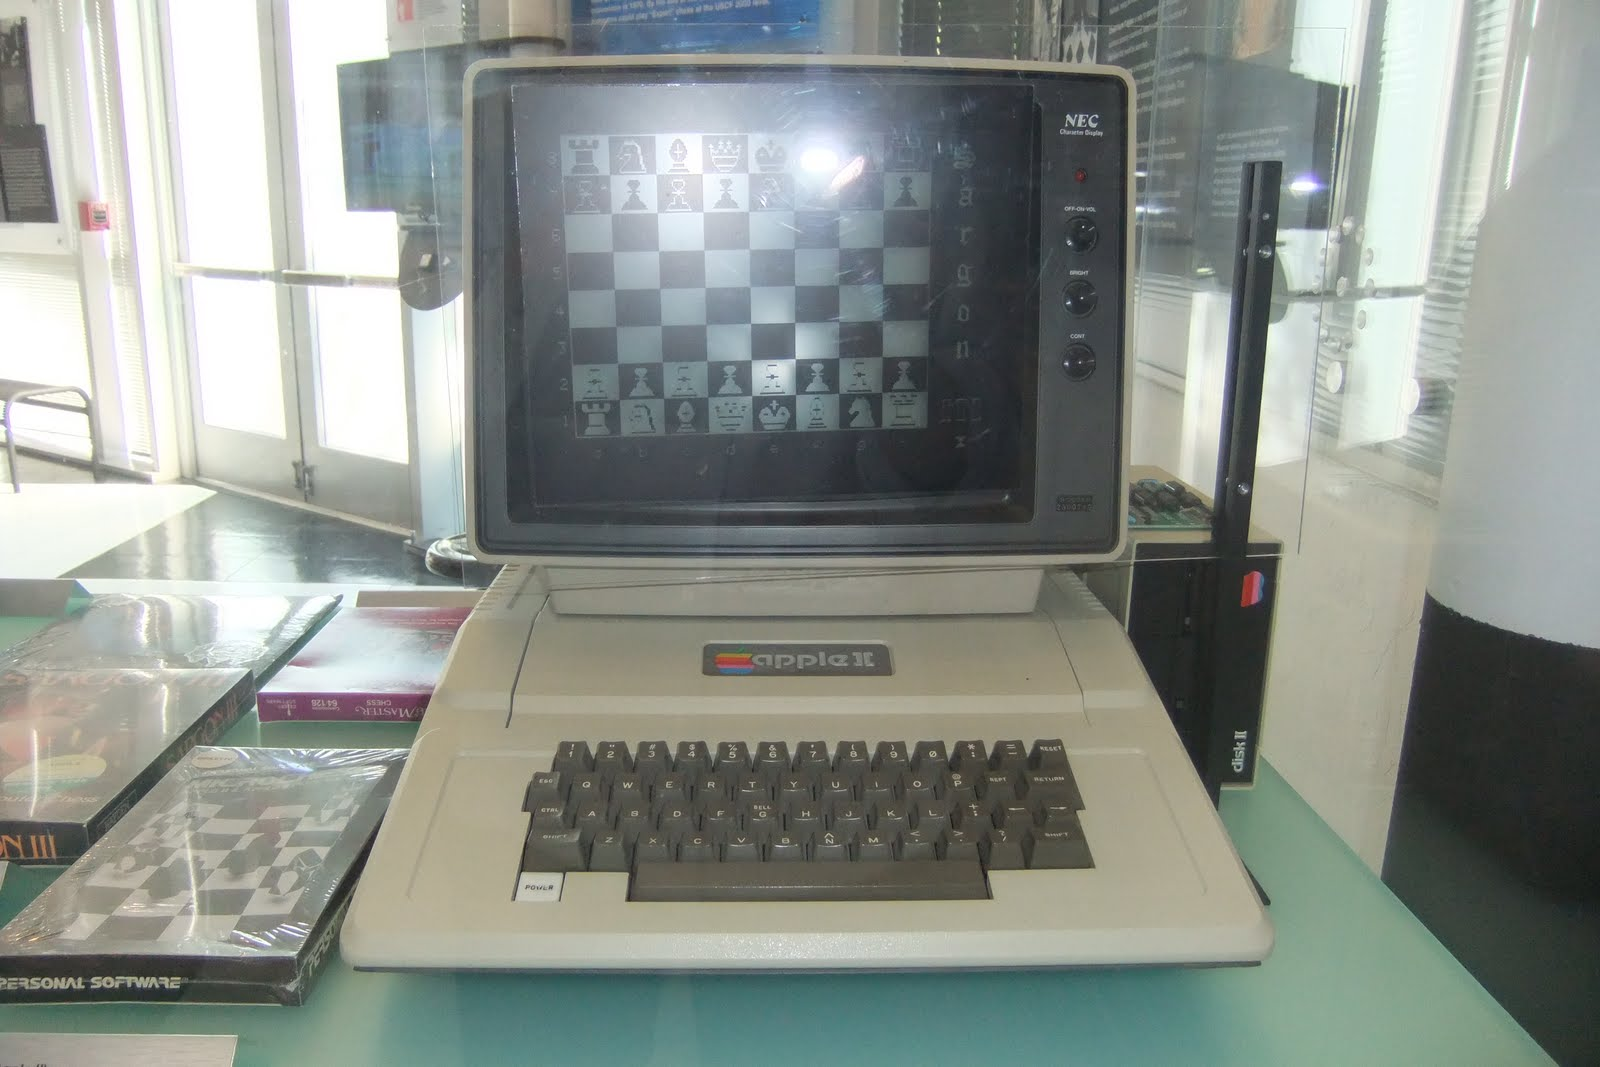 apple2-with-necdisplay